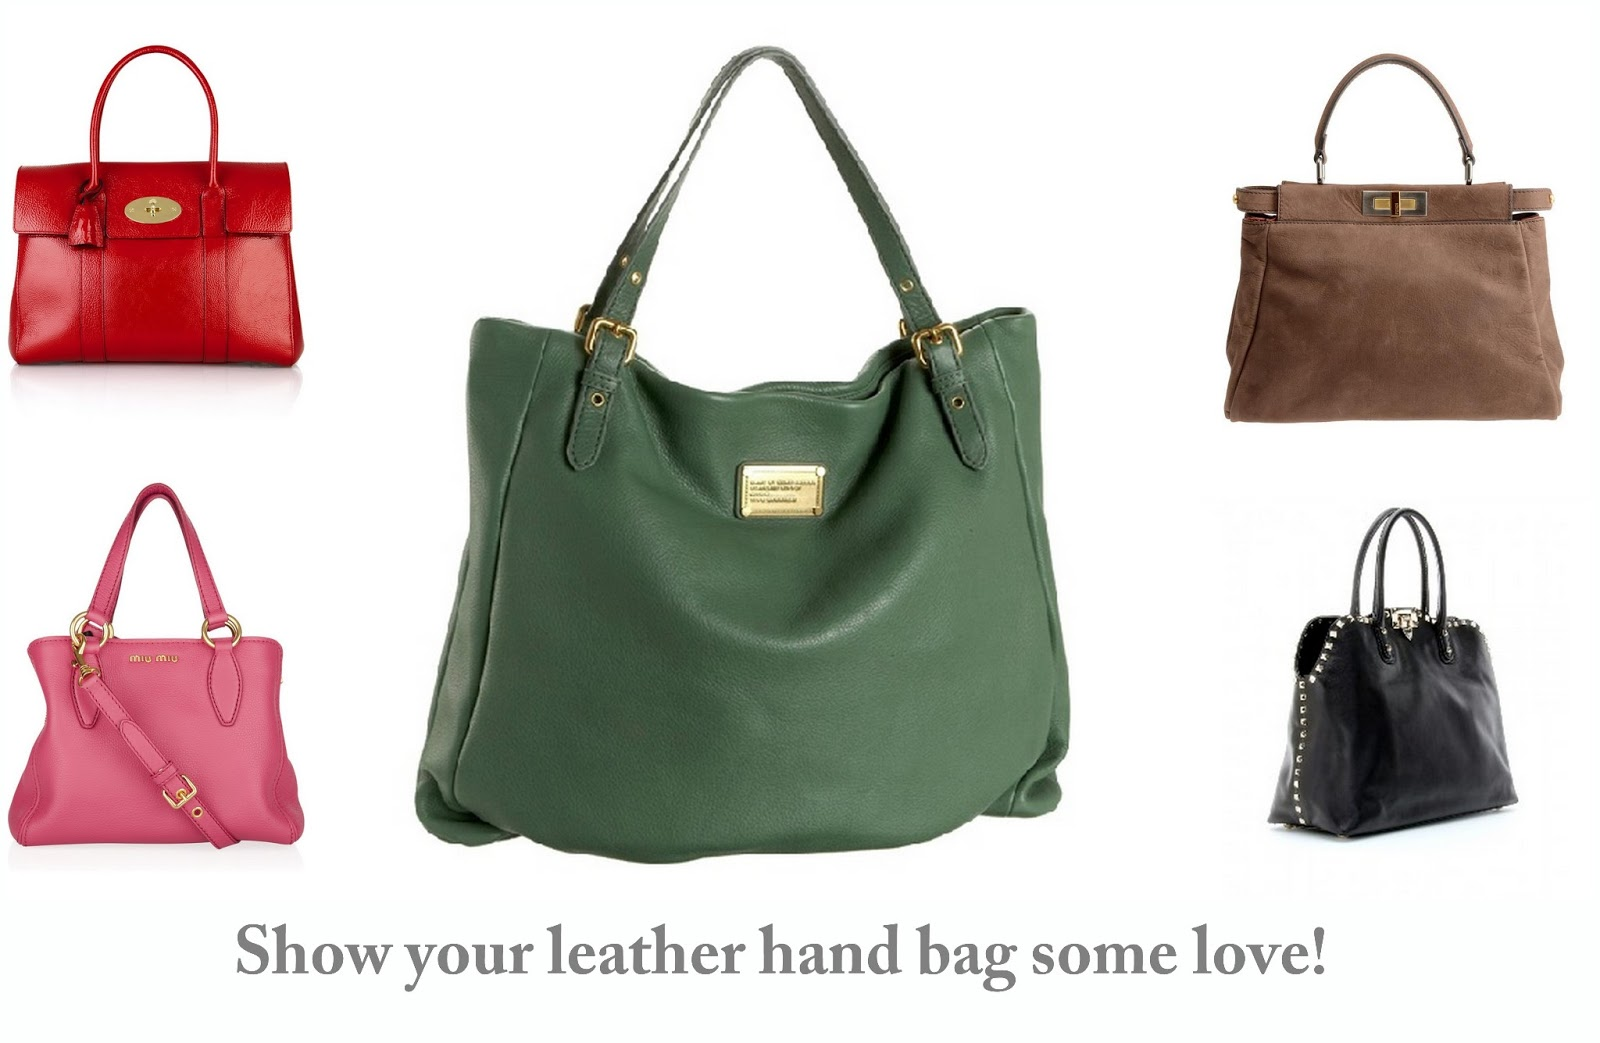 Get Gawjus: How do you take care of your leather hand bags?